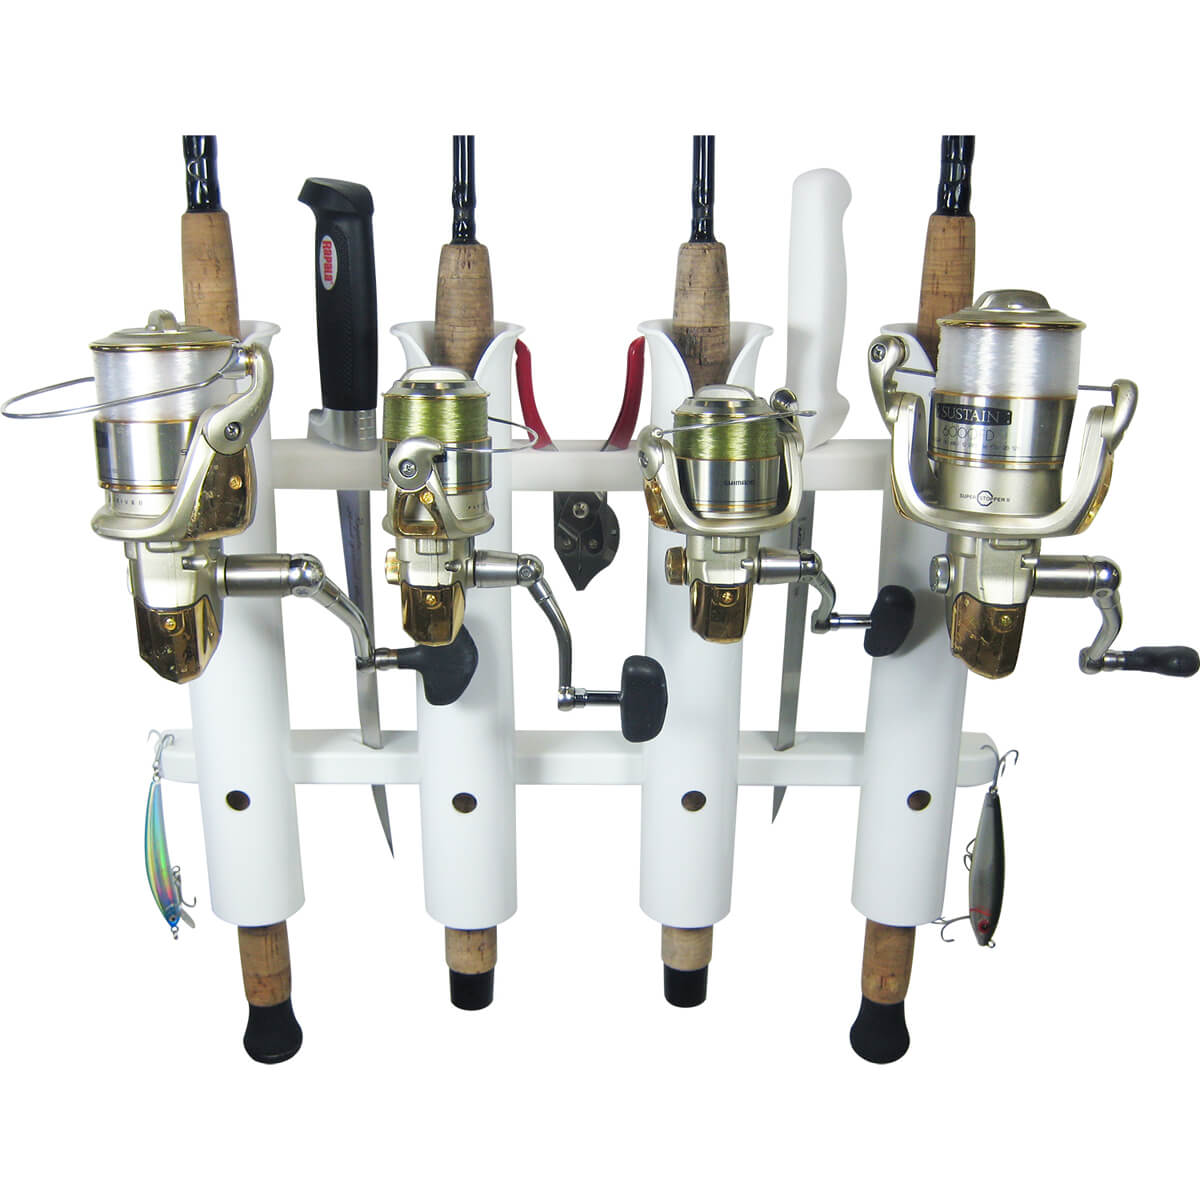 4 rod deluxe fishing rod holder rack white boat outfitters for Amazon fishing rod holders